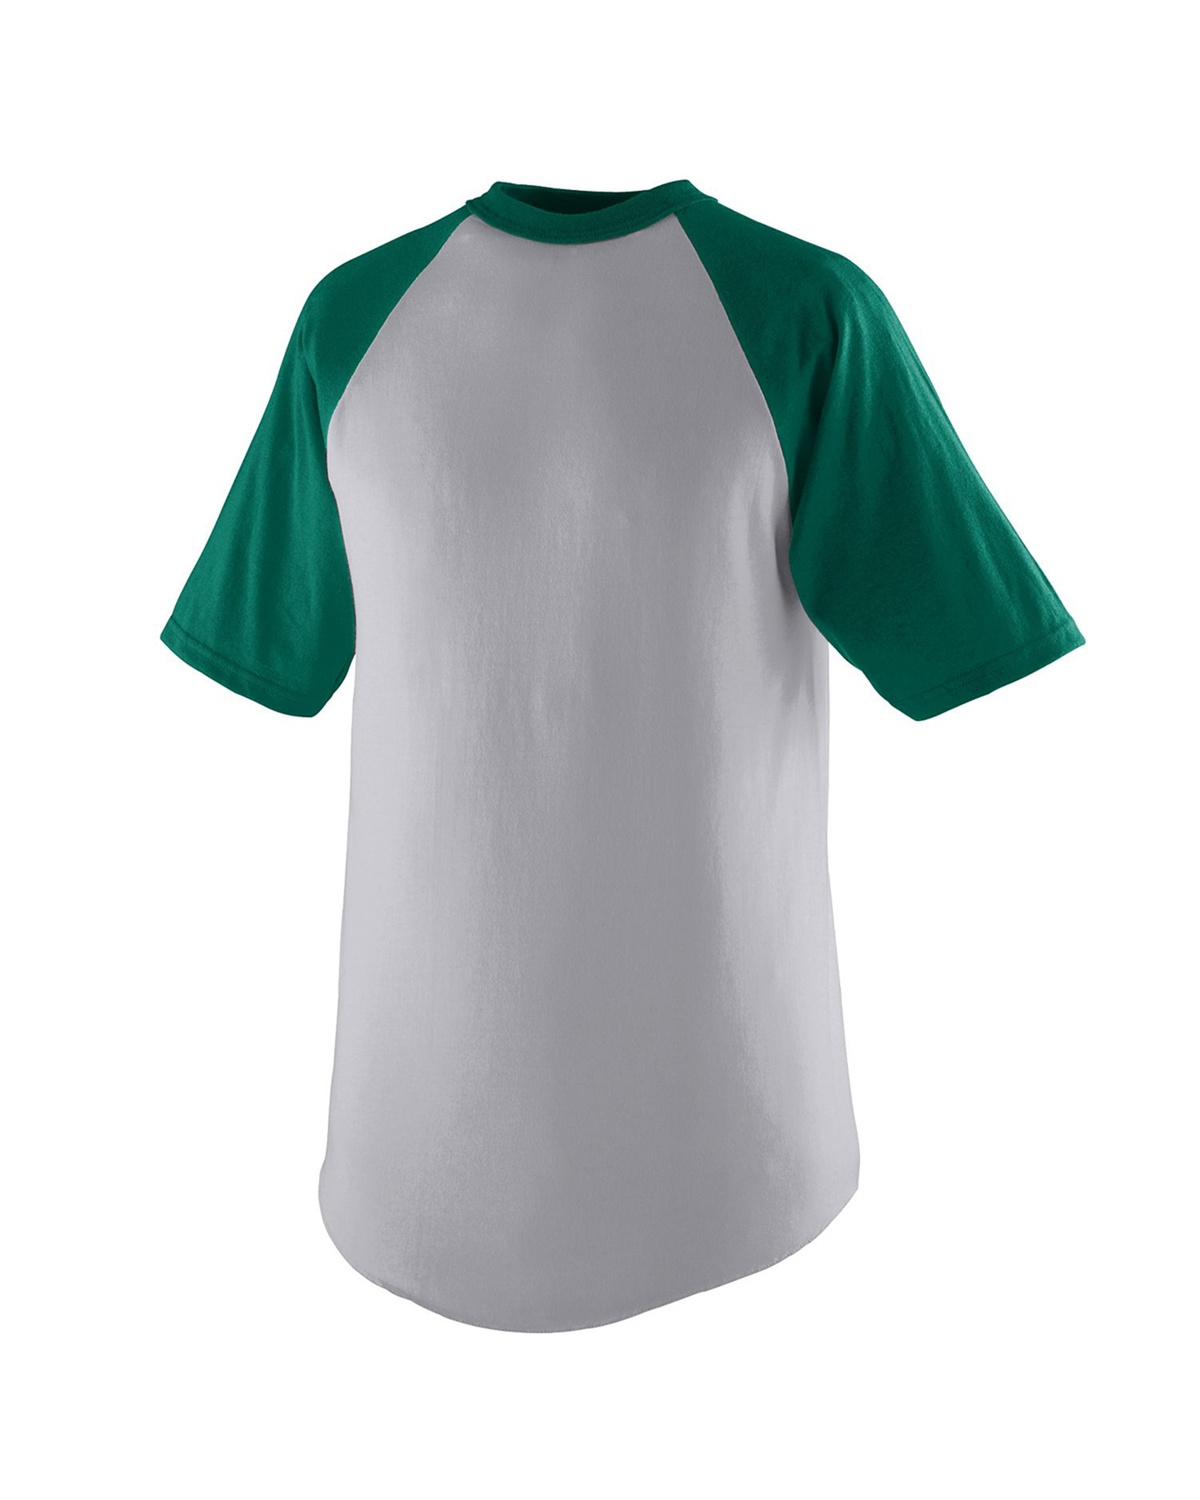 Youth Short-Sleeve Baseball Jersey